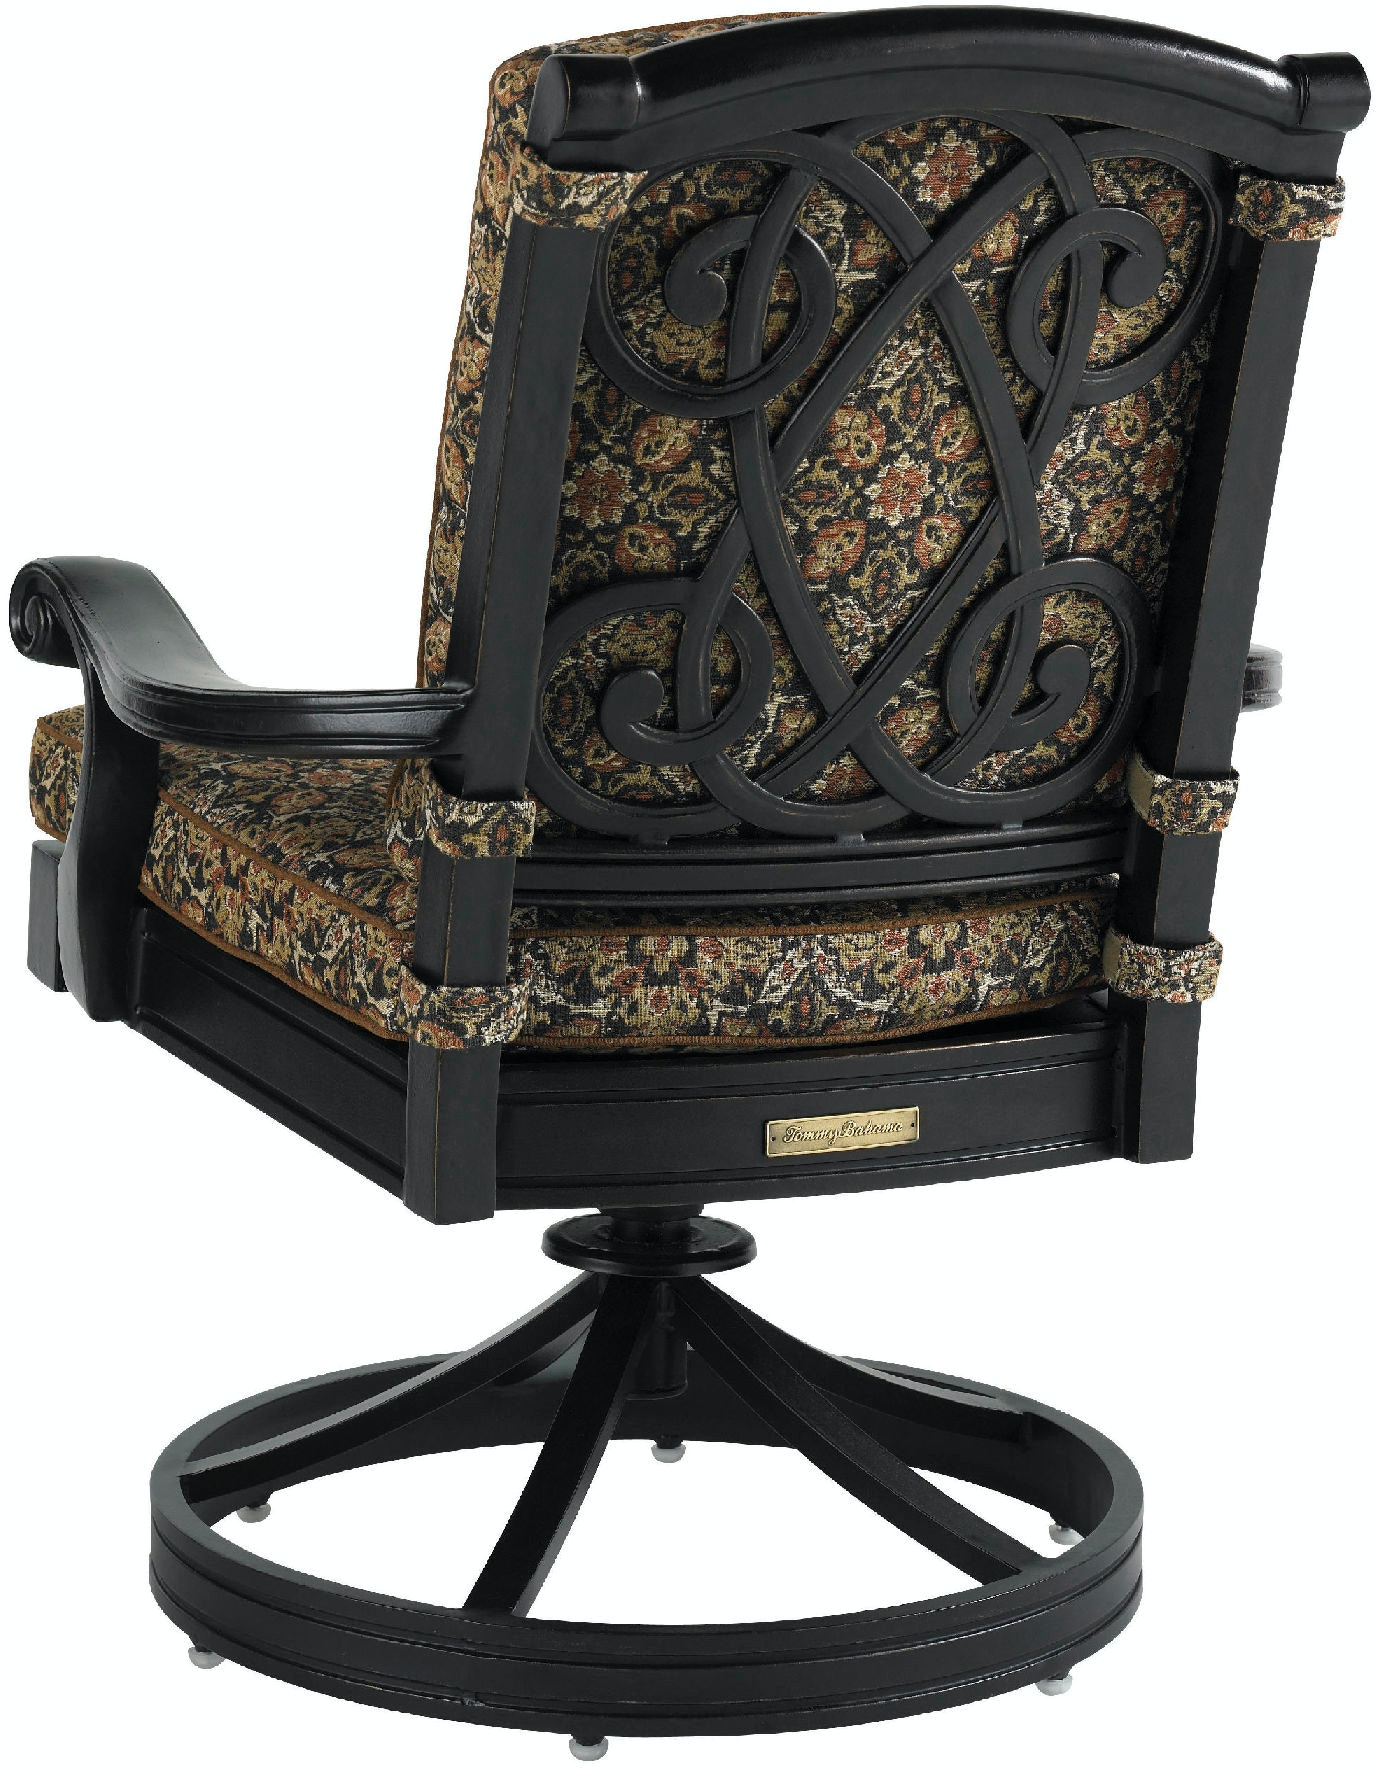 Tommy Bahama Outdoor Living Outdoor Patio Swivel Rocker Dining Chair